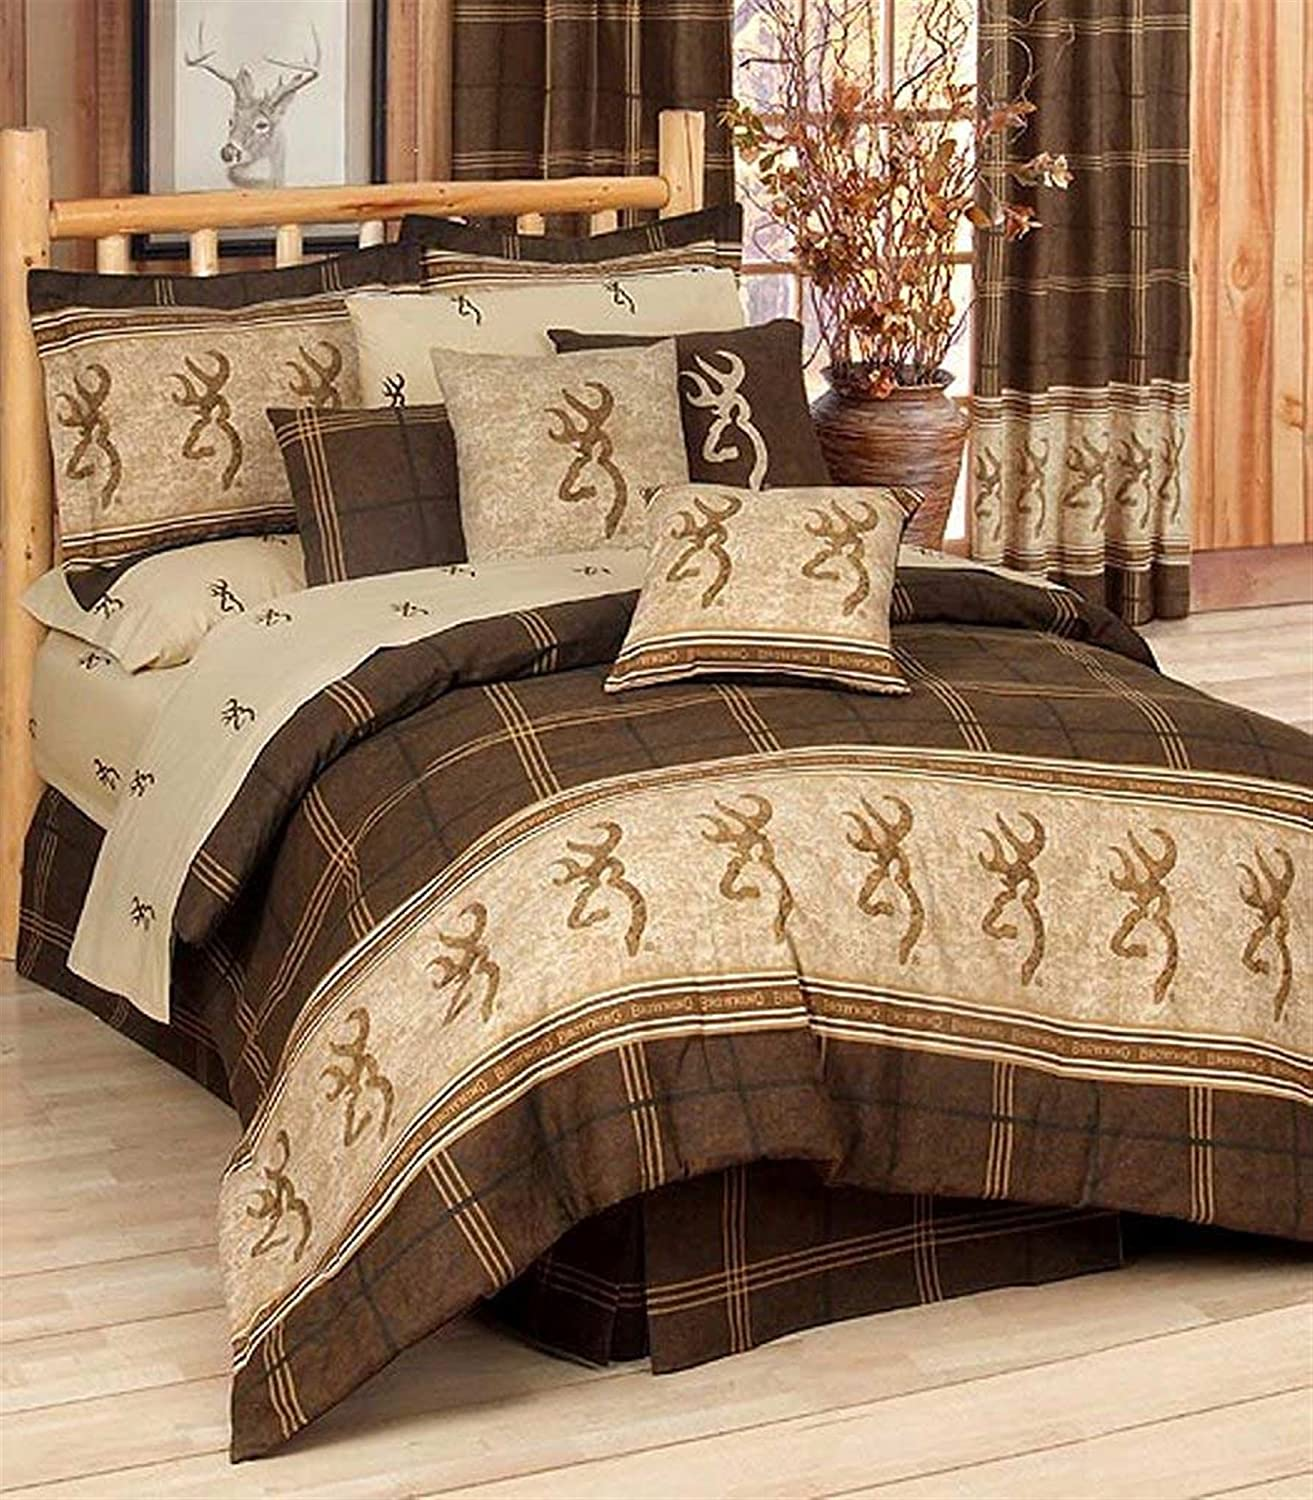 upholstered ideas tall rustic sprinklers bright ends cozy large headboards modern furniturewhite new inspirations firms padded design beige bedding of headboard set cool space stupendous size king gym plush nook bedroom for lighting head breakfast double image bed luxury full build